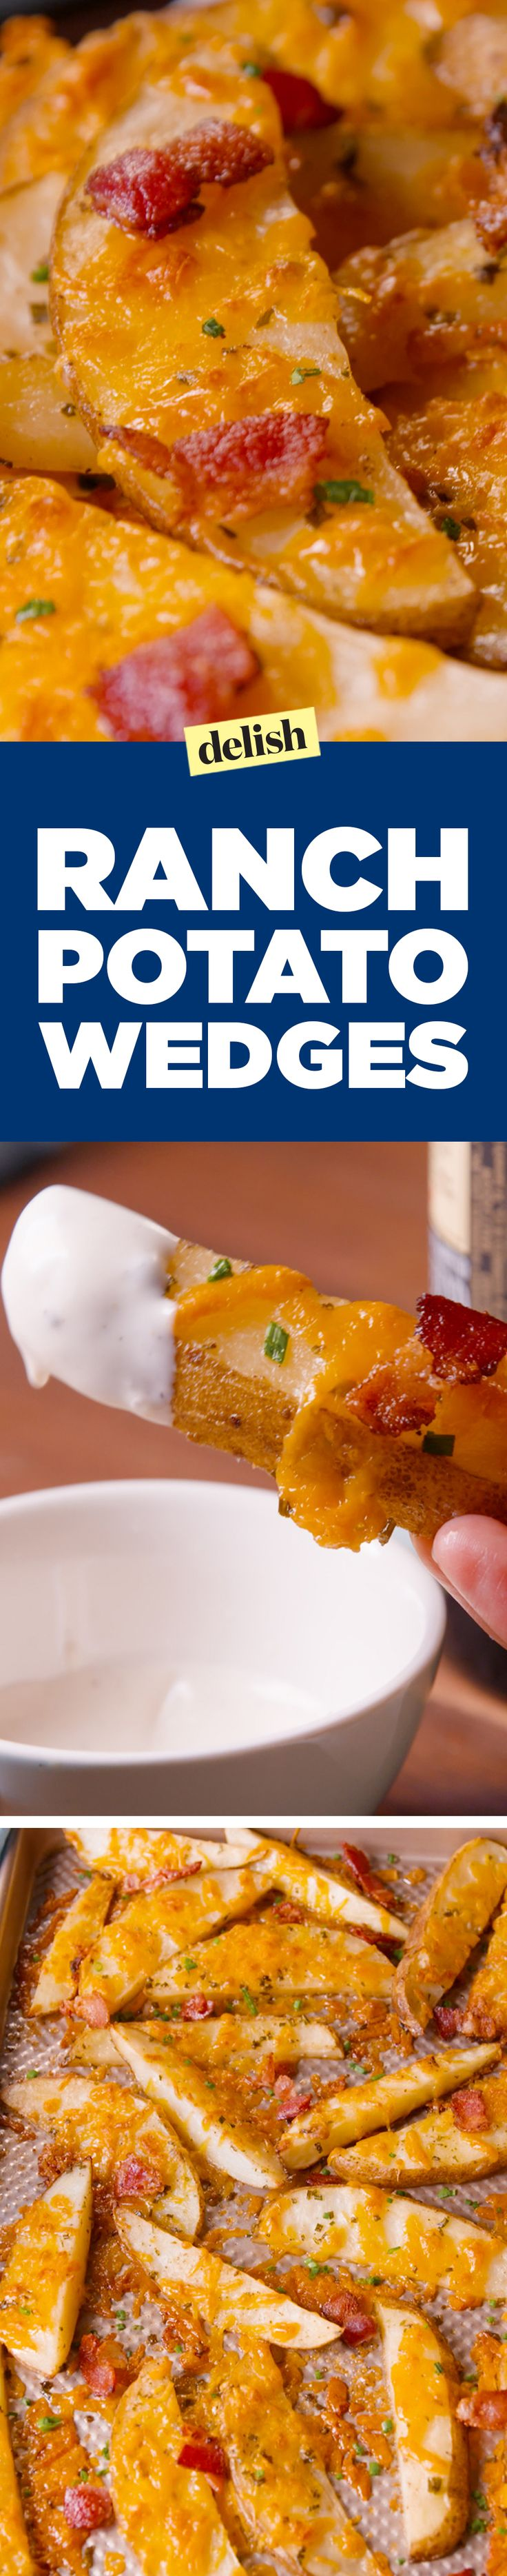 Ranch Potato Wedges are the only way to eat fries on game day. Get the recipe on Delish.com.